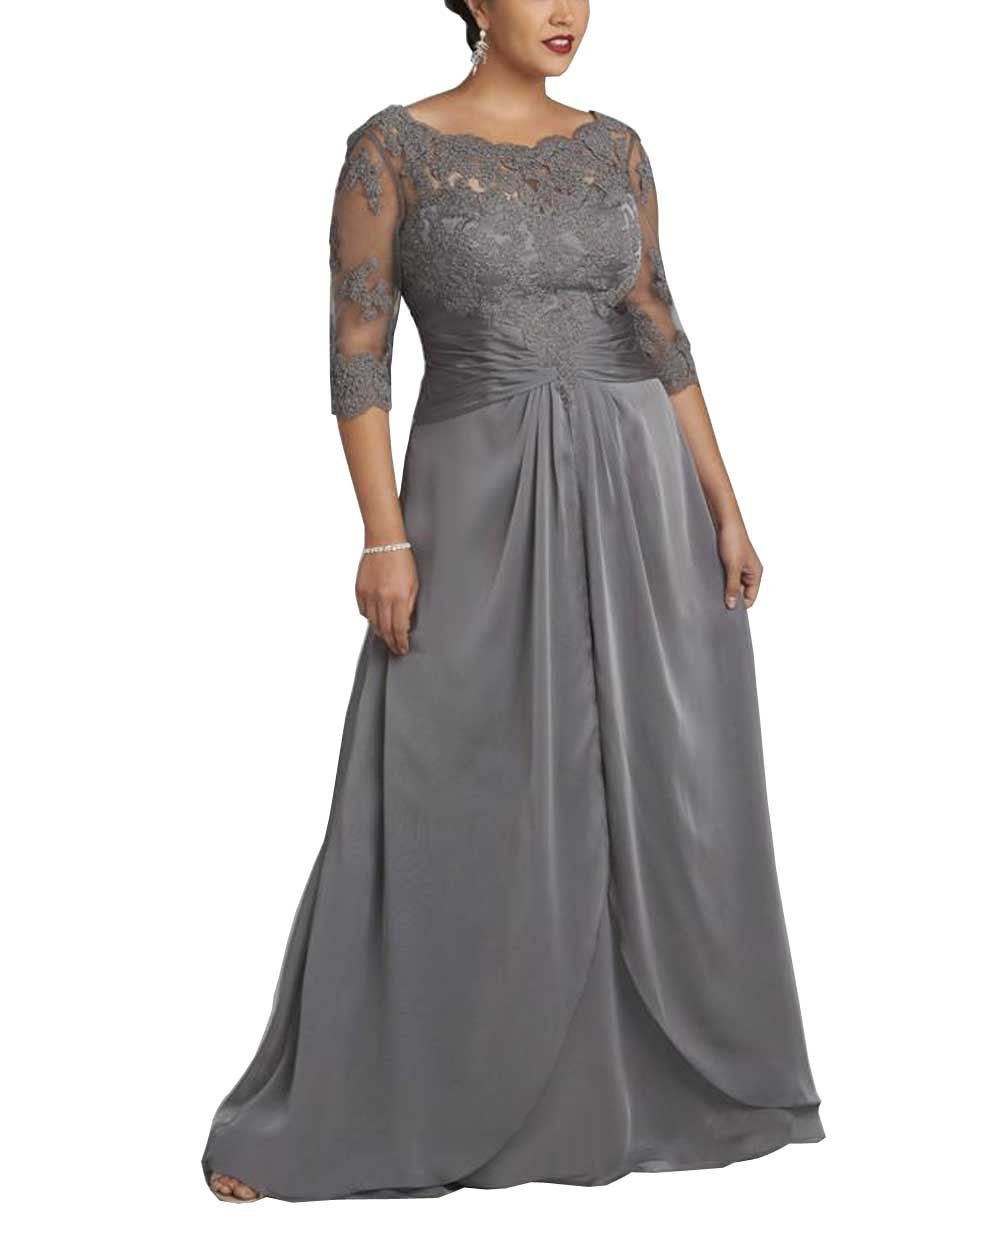 Dreamdress Women's Plus Size Grey Chiffon Sheer Long Evening Dress Formal Ball